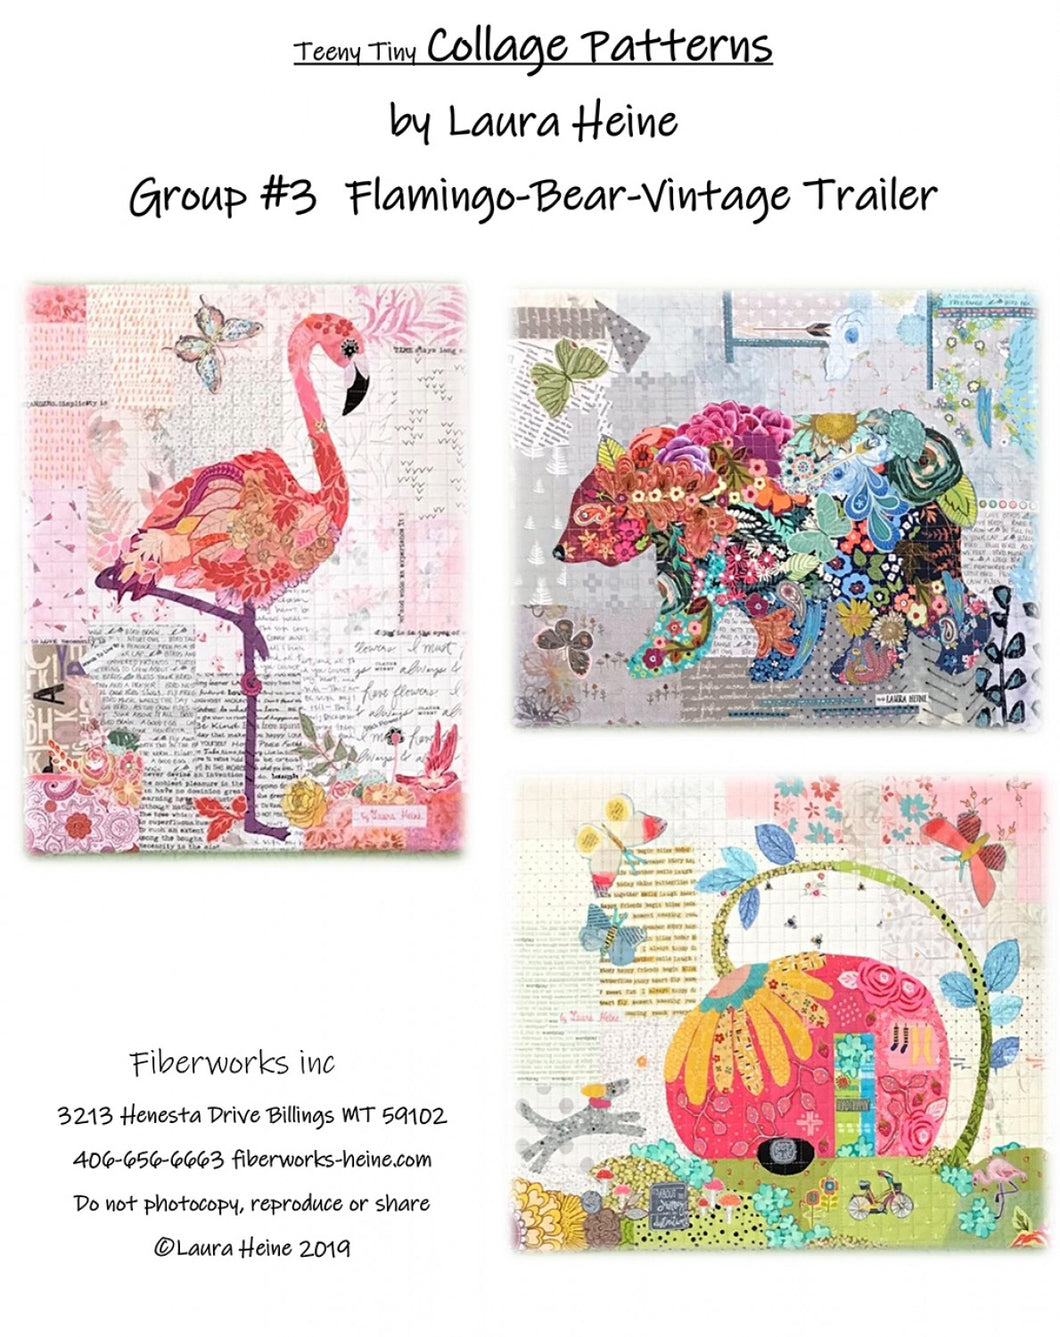 Teeny Tiny Collage Pattern - Flamingo, Bear, Vintage Trailer